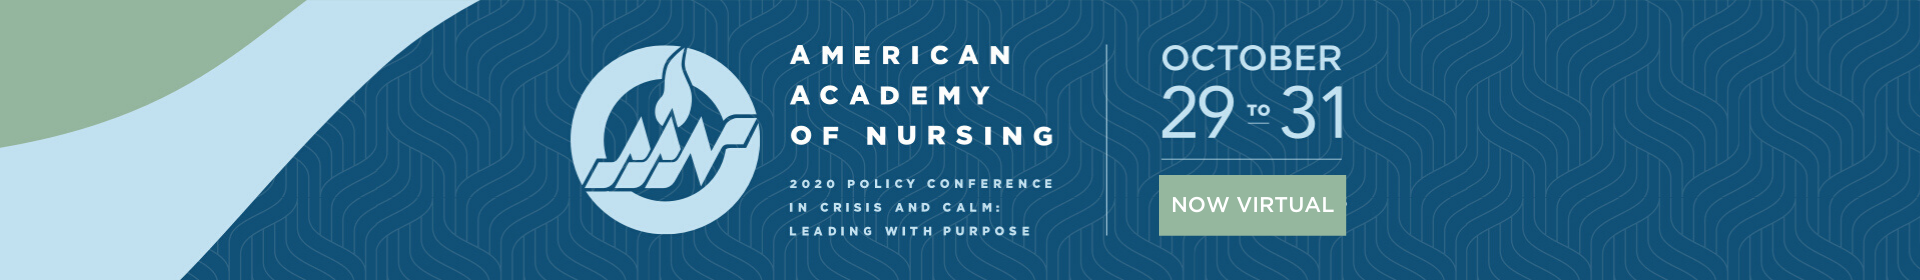 Academy's 2020 Transforming Health Driving Policy Conference Event Banner